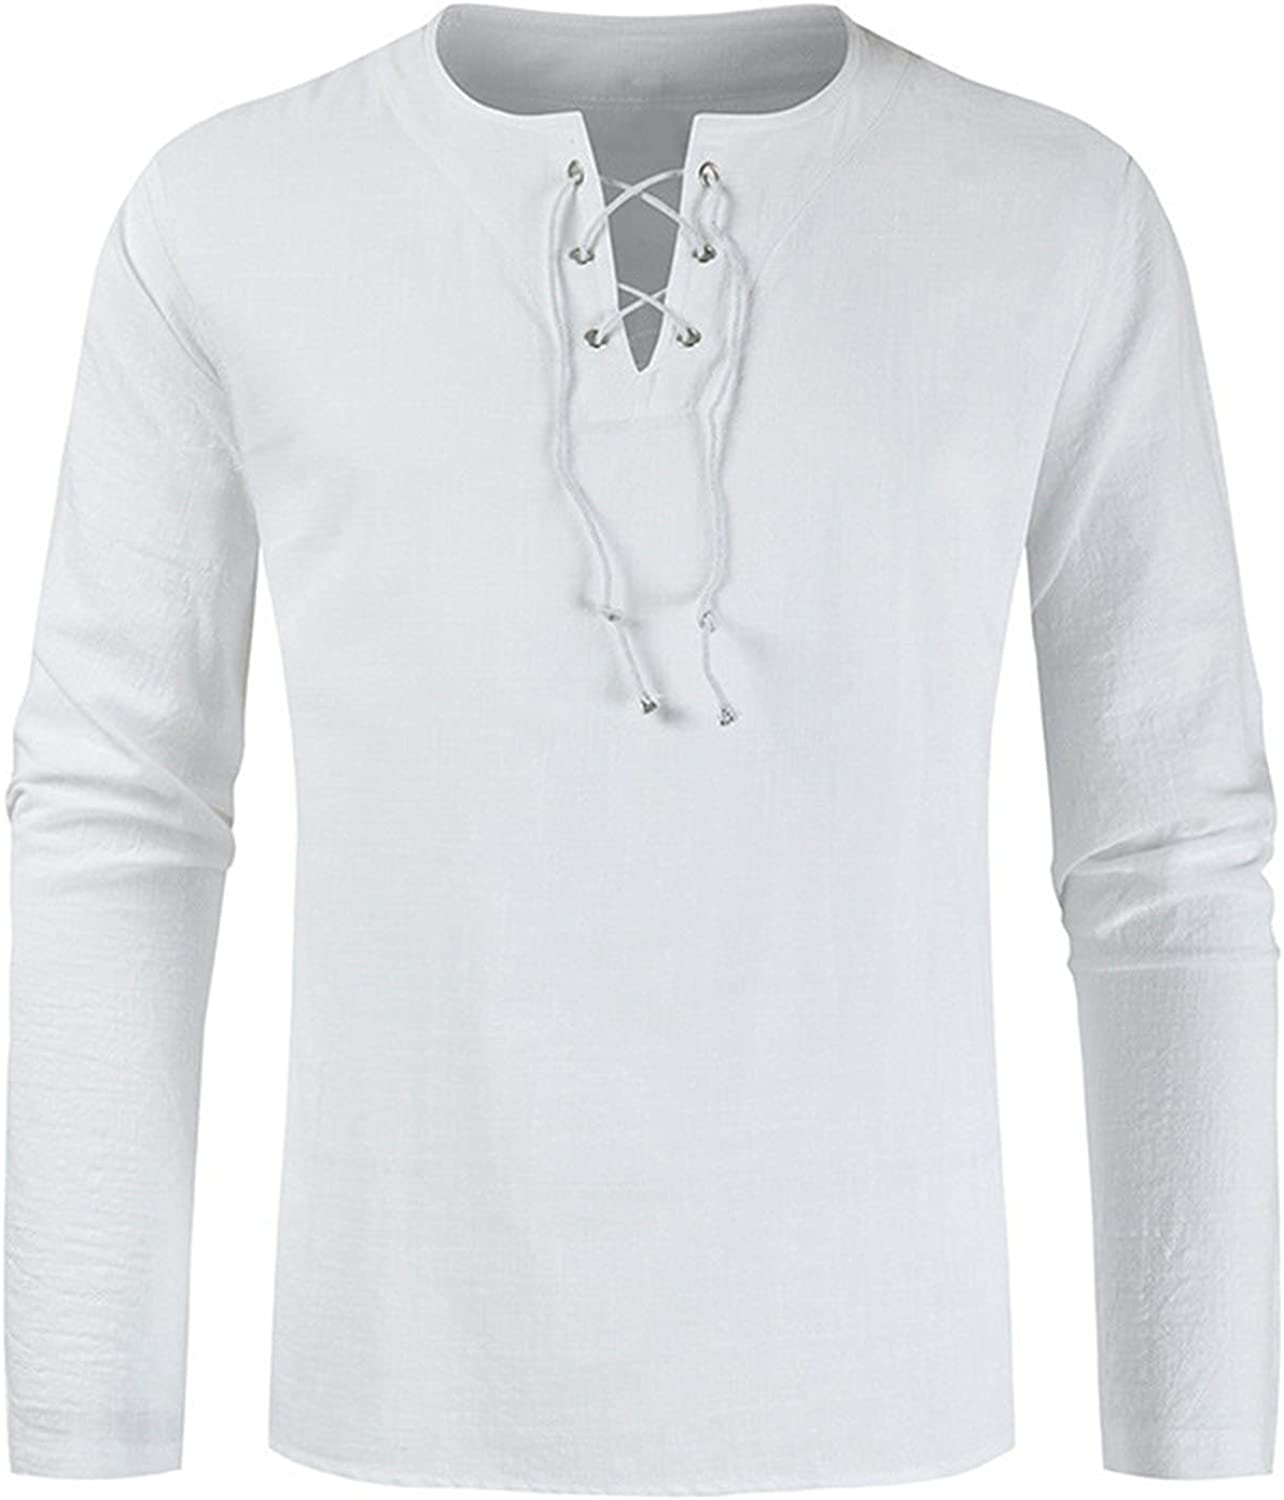 ZHDD Cotton Linen Casual Tops for Mens, Fall Henley V Neck Long Sleeve Loose Relaxed-fit Solid Color Tee Shirts